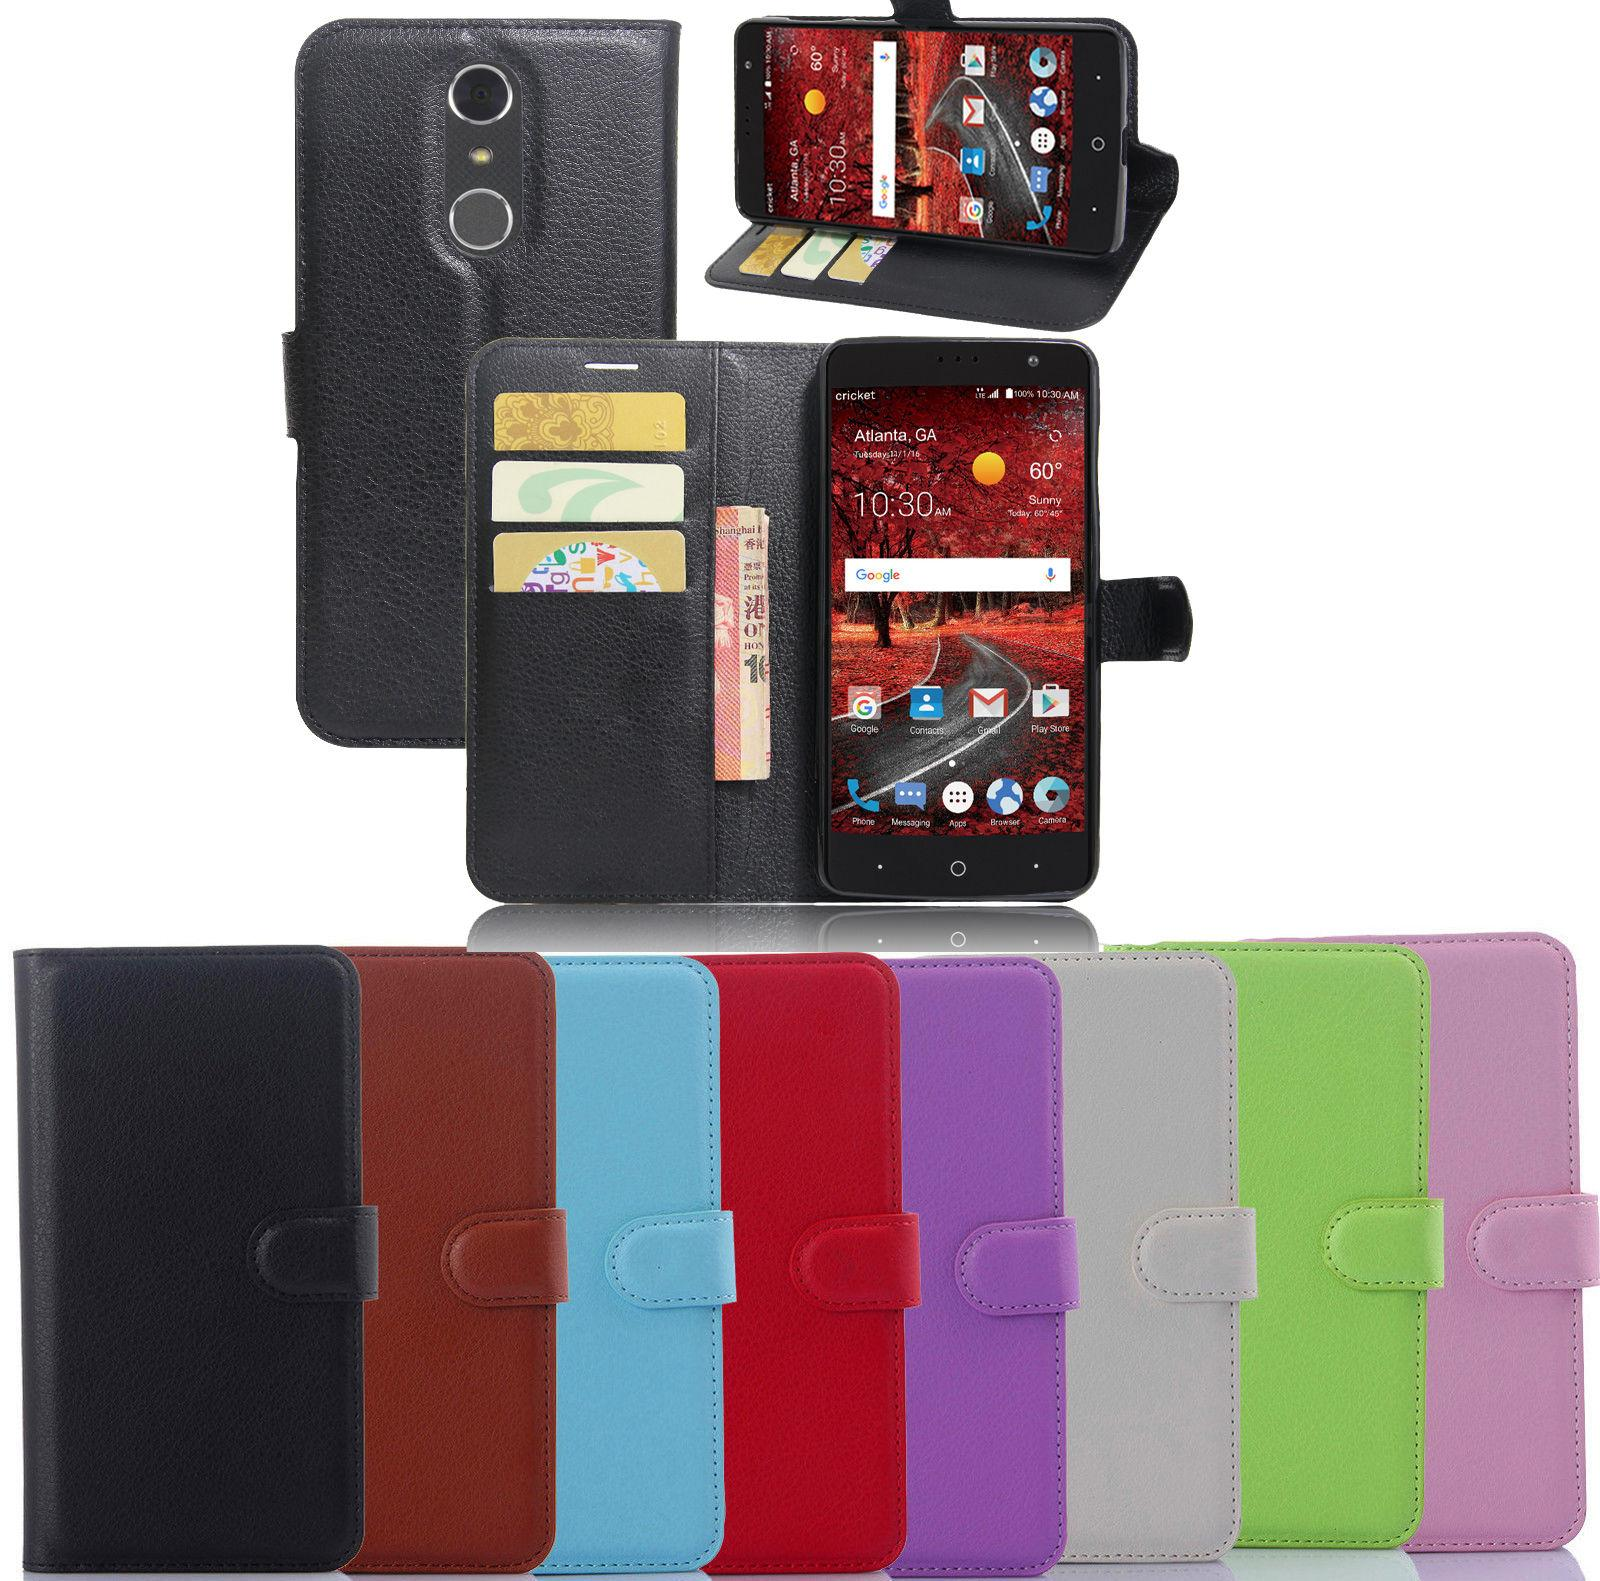 new style 78c56 cac75 Aliexpress.com : Buy Shockproof Magnetic PU Leather Wallet Flip Case Cover  for ZTE Blade Spark Z971 from Reliable Wallet Cases suppliers on stand-up  ...